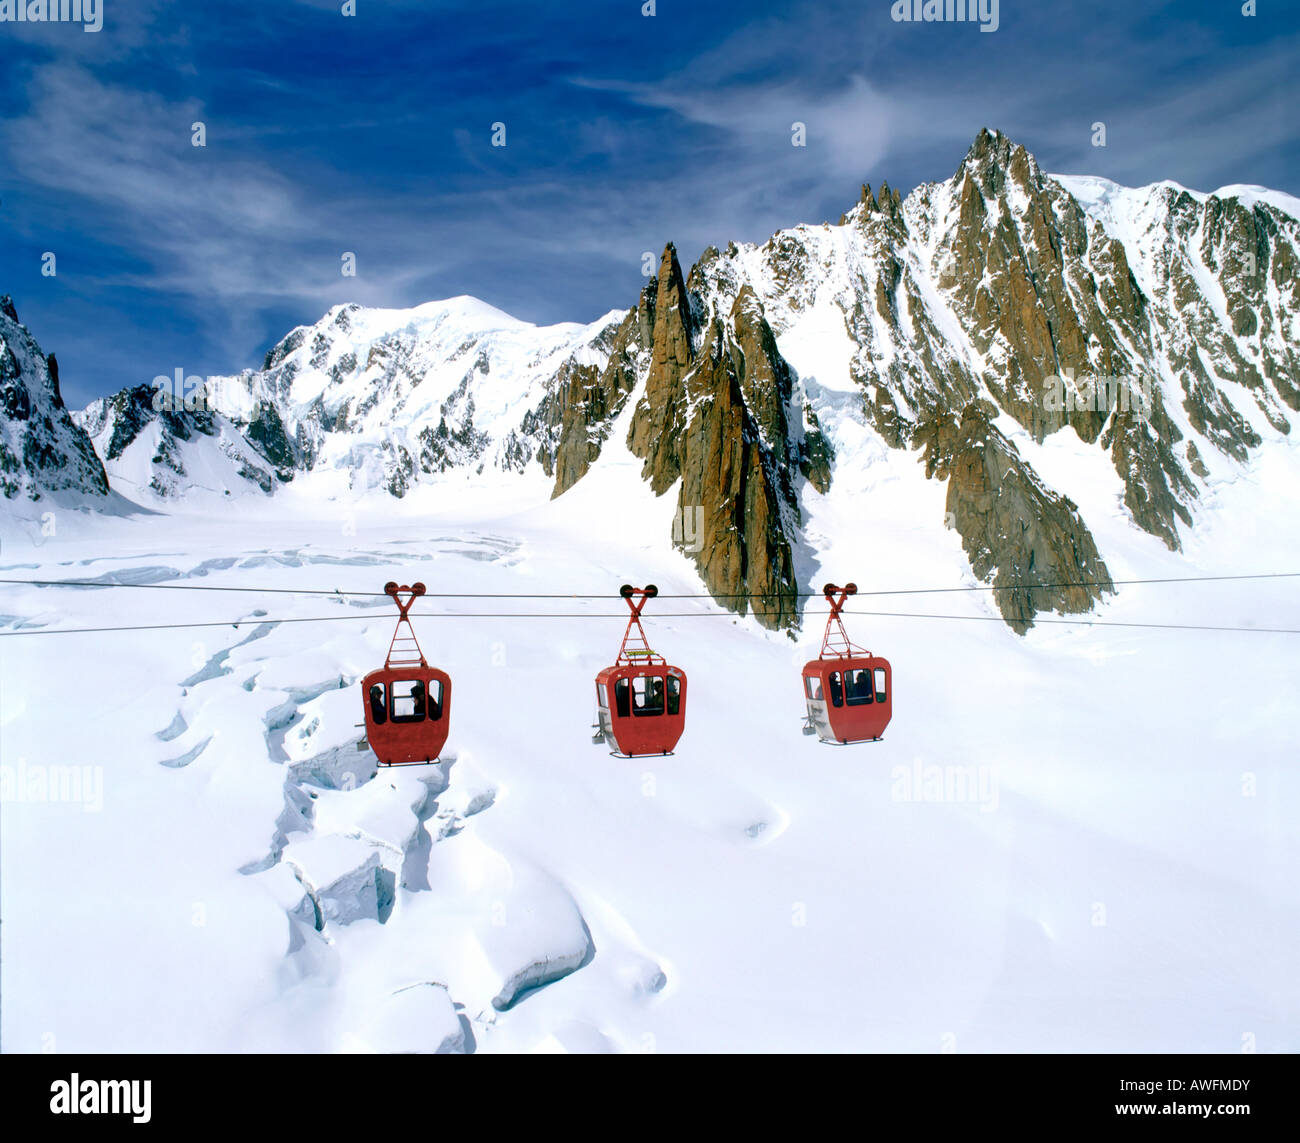 Gondola lift going from Mt. Aiguille du Midi to Point Helbonner, view of Turin Cabin, Mont Blanc, Vallee Blanche, Stock Photo